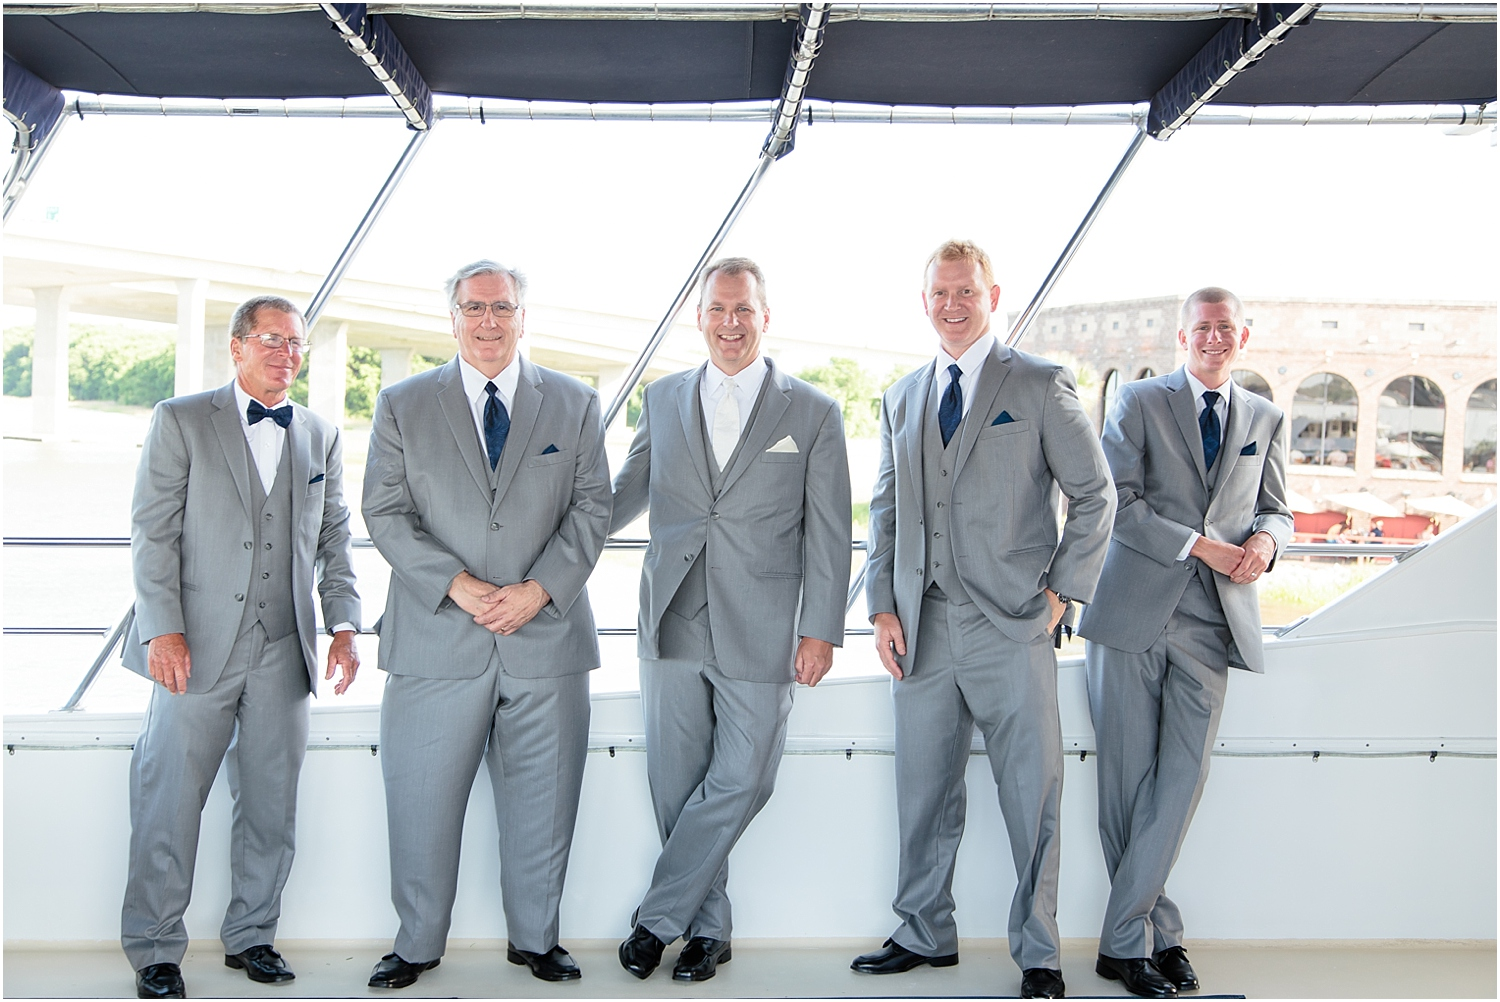 Bridal Party,ashley river,charleston,wedding,